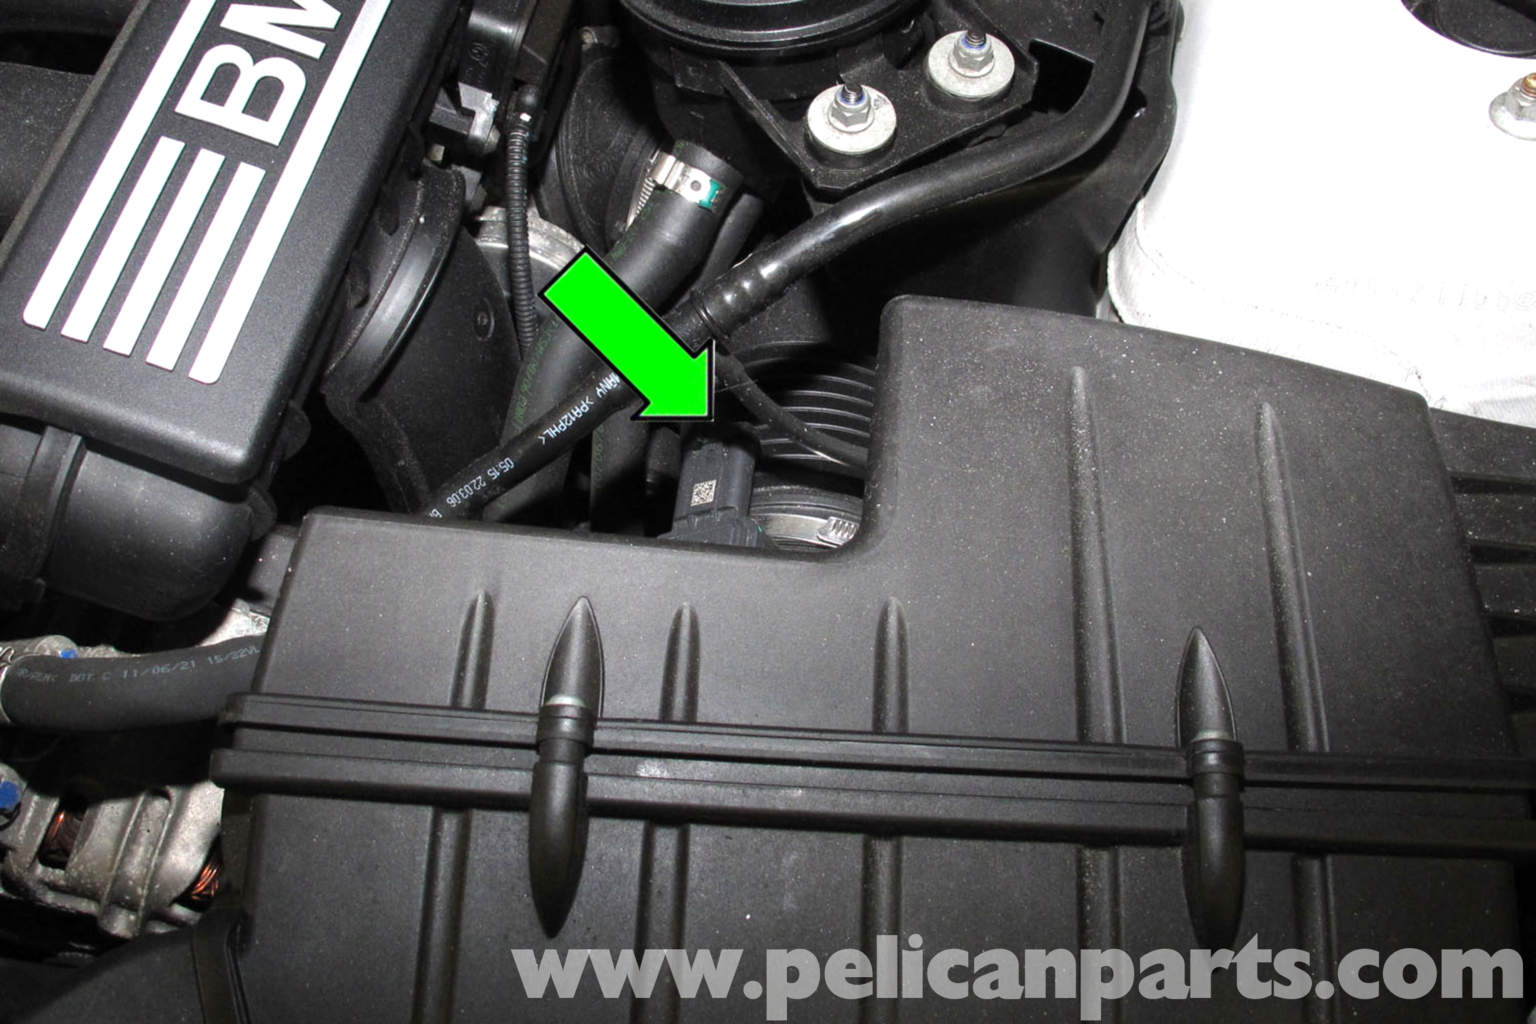 Bmw E90 Knock Sensor Replacement E91 E92 E93 Pelican Parts Diy Maintenance Article